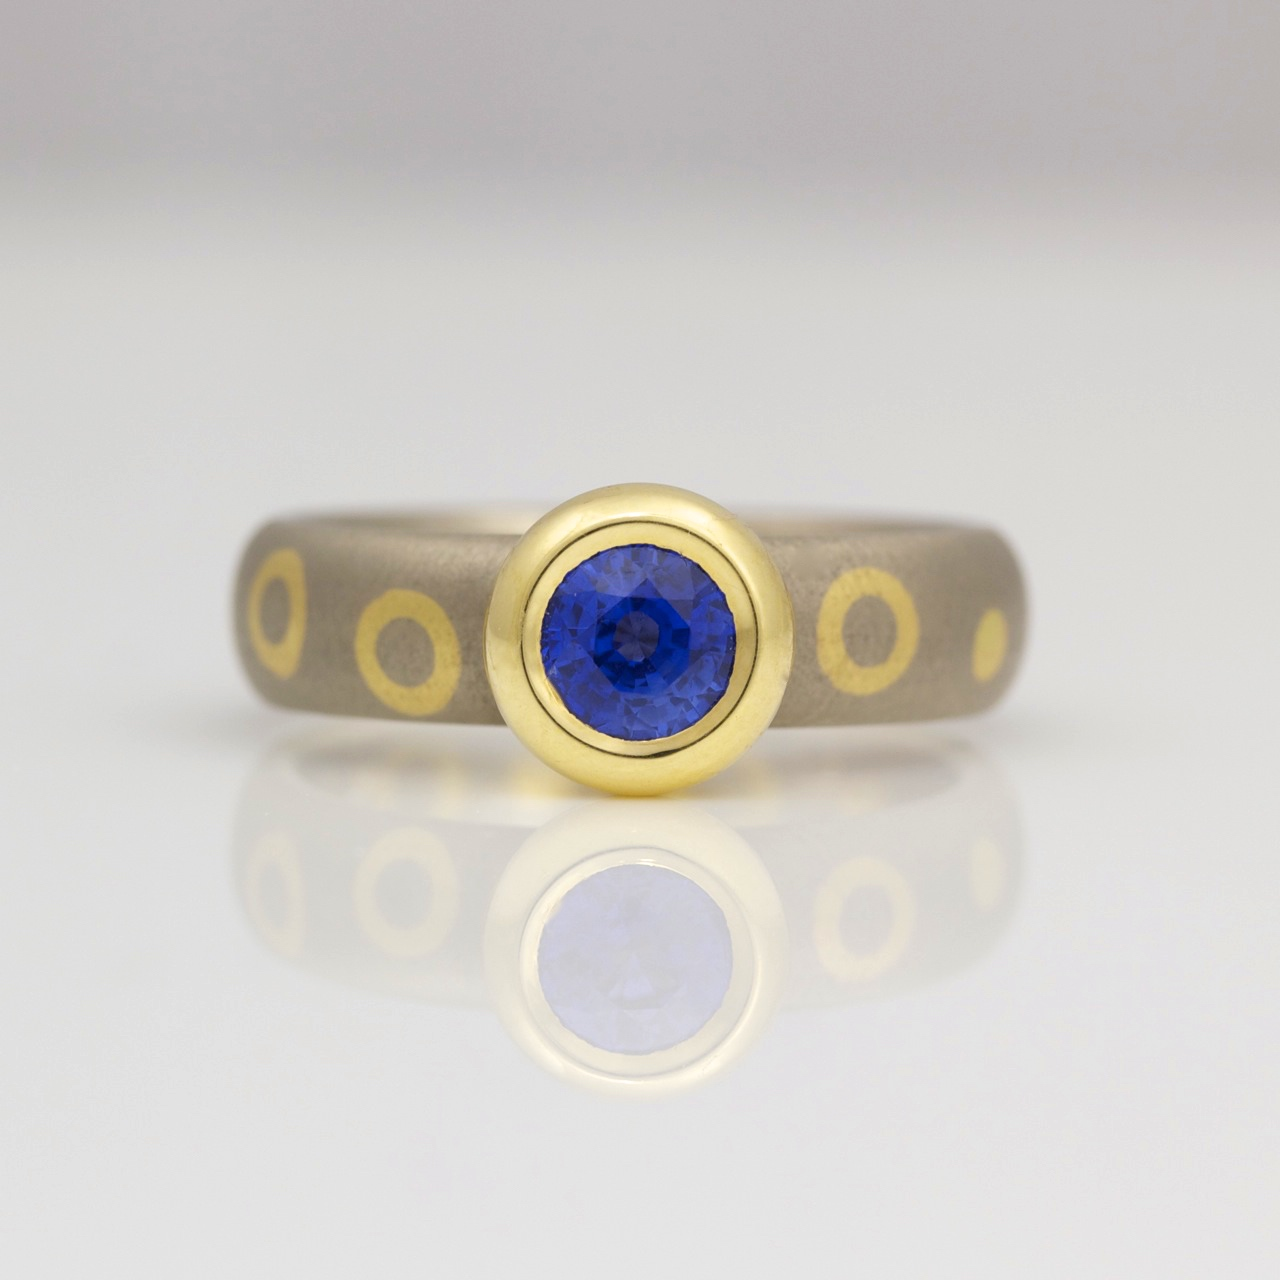 jewellery roman mens online india company sapphire rings yellow candere gold a ring kalyan com shopping jewellers